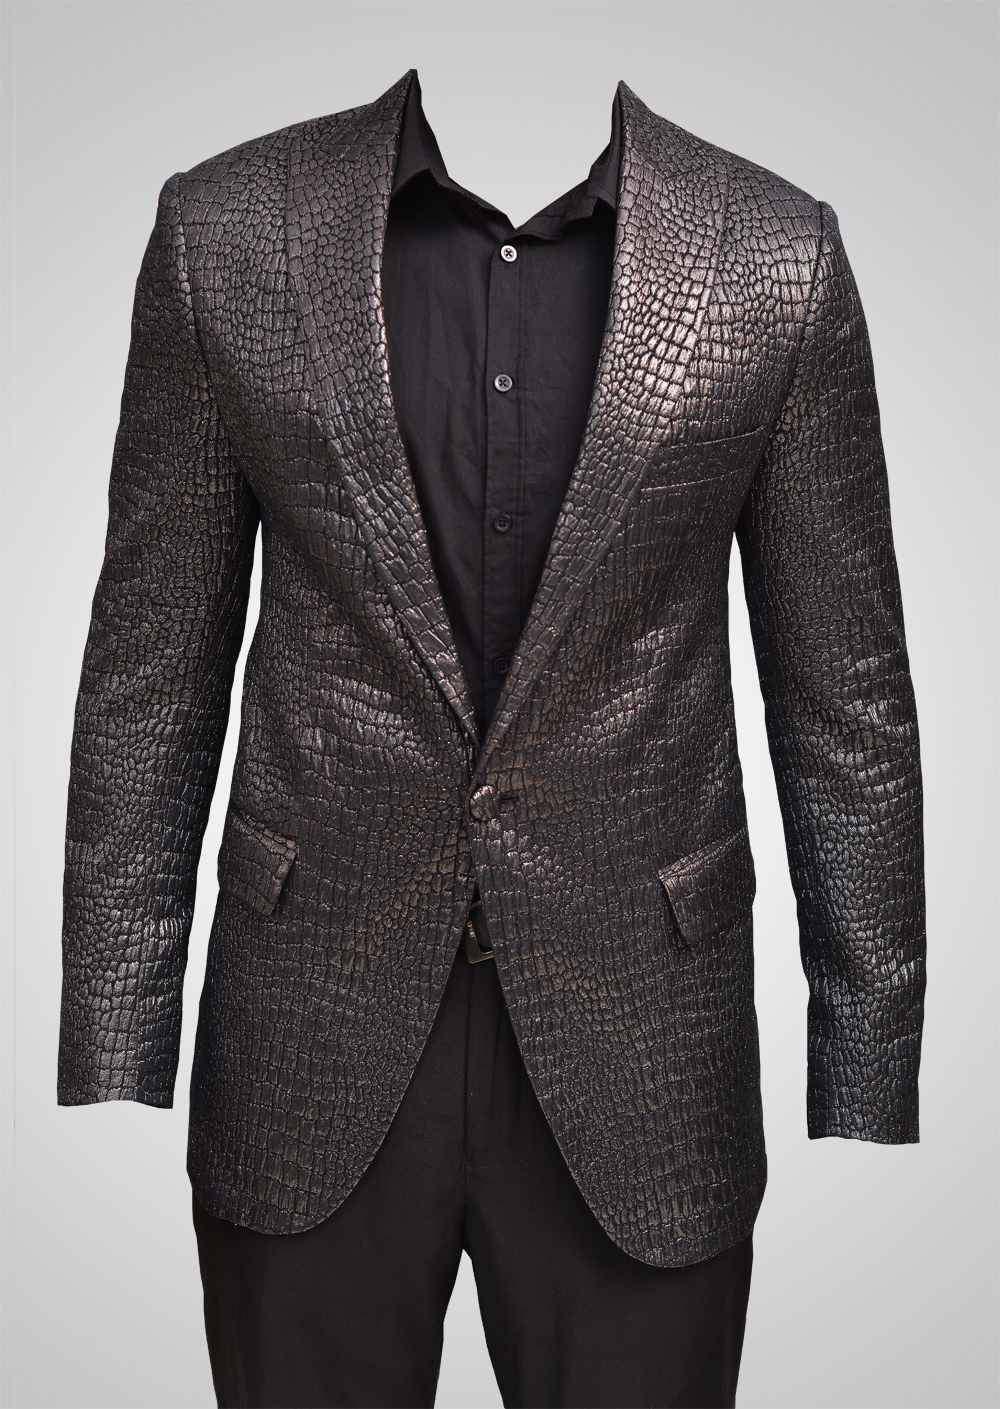 The best designer blazers for men in Nairobi Kenya